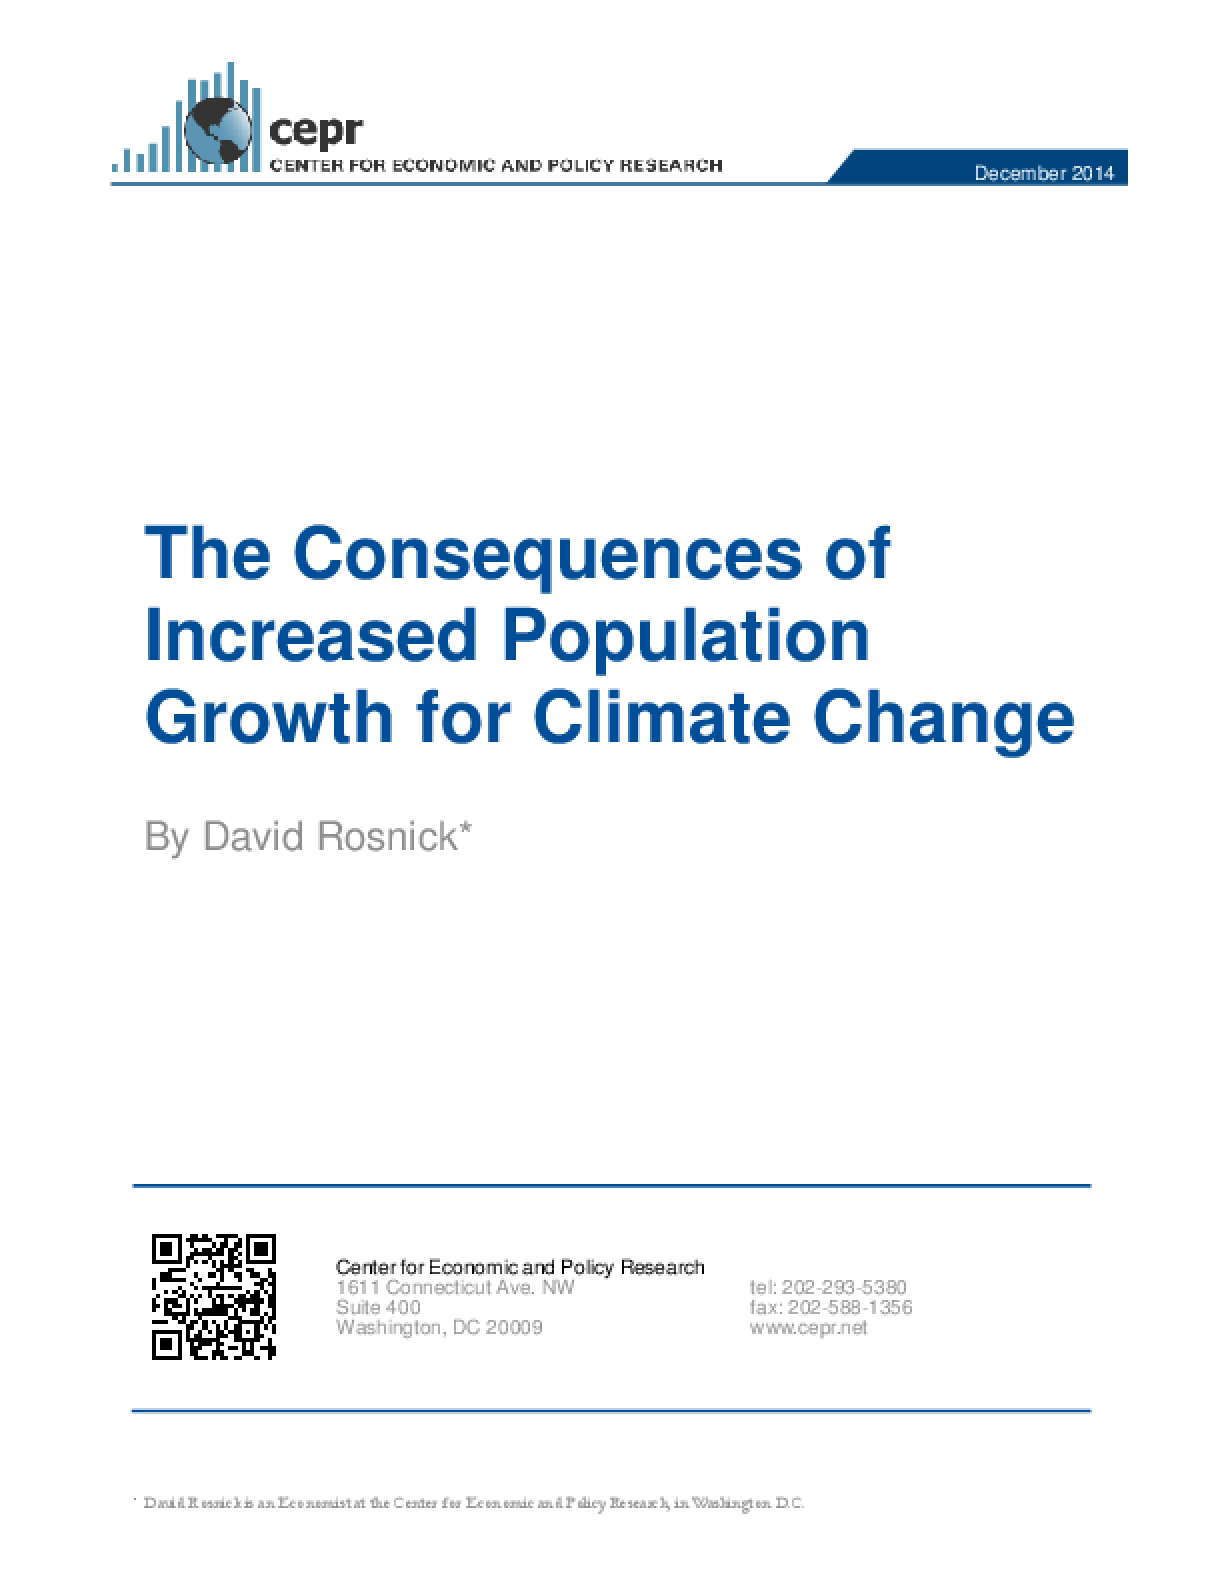 The Consequences of Increased Population Growth for Climate Change